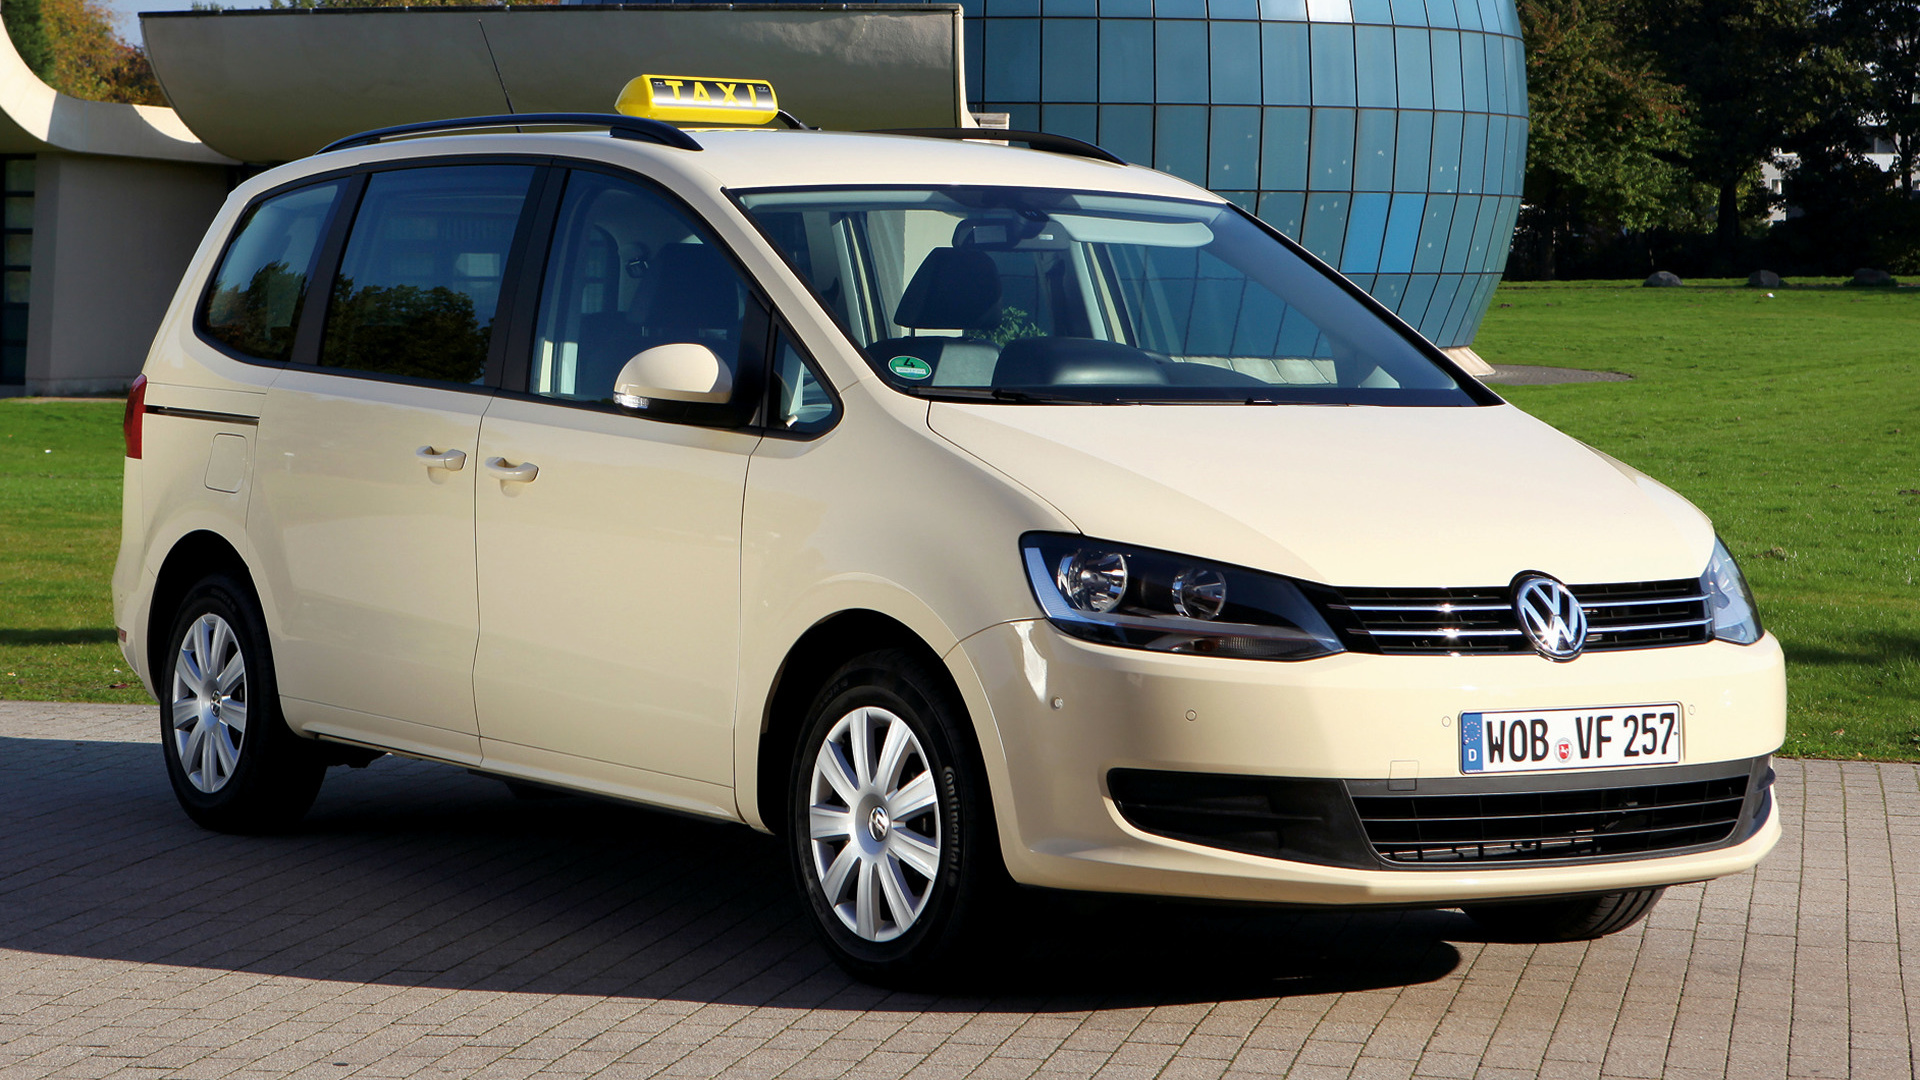 volkswagen sharan taxi 2010 wallpapers and hd images car pixel. Black Bedroom Furniture Sets. Home Design Ideas